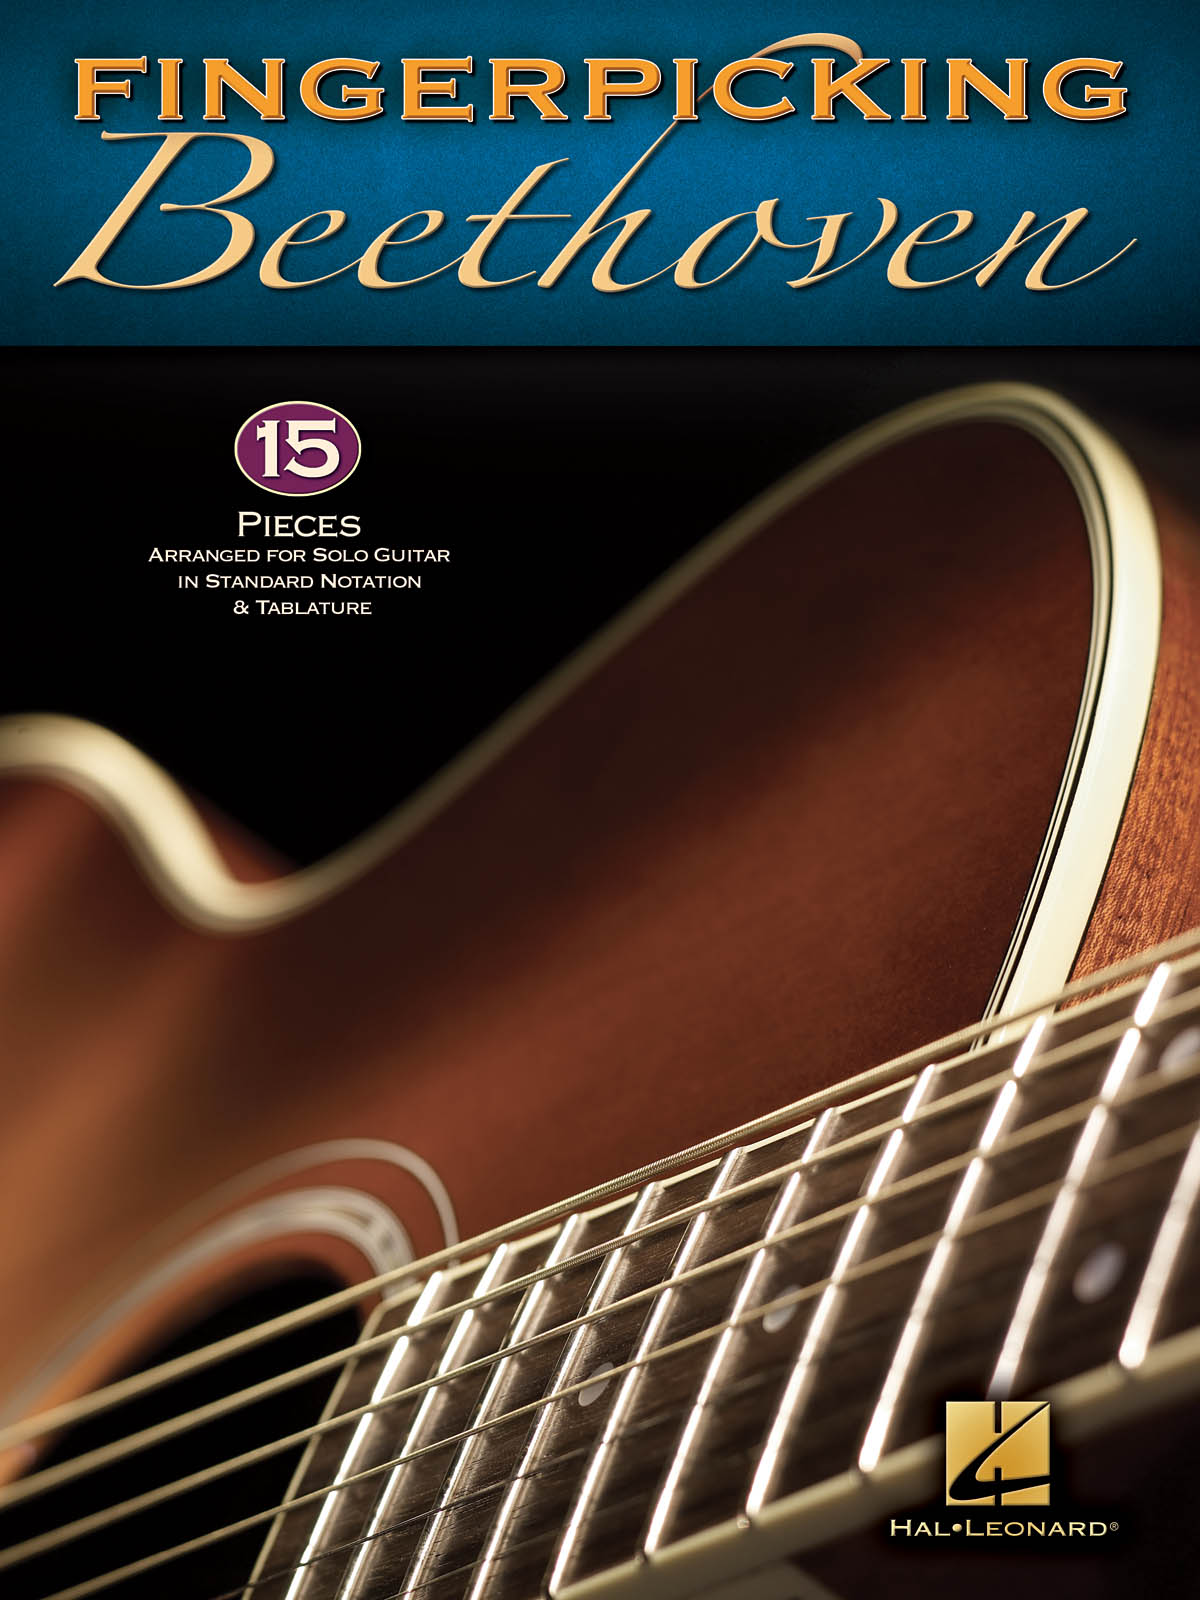 Fingerpicking Beethoven. 15 Pieces Arranged For Solo Guitar